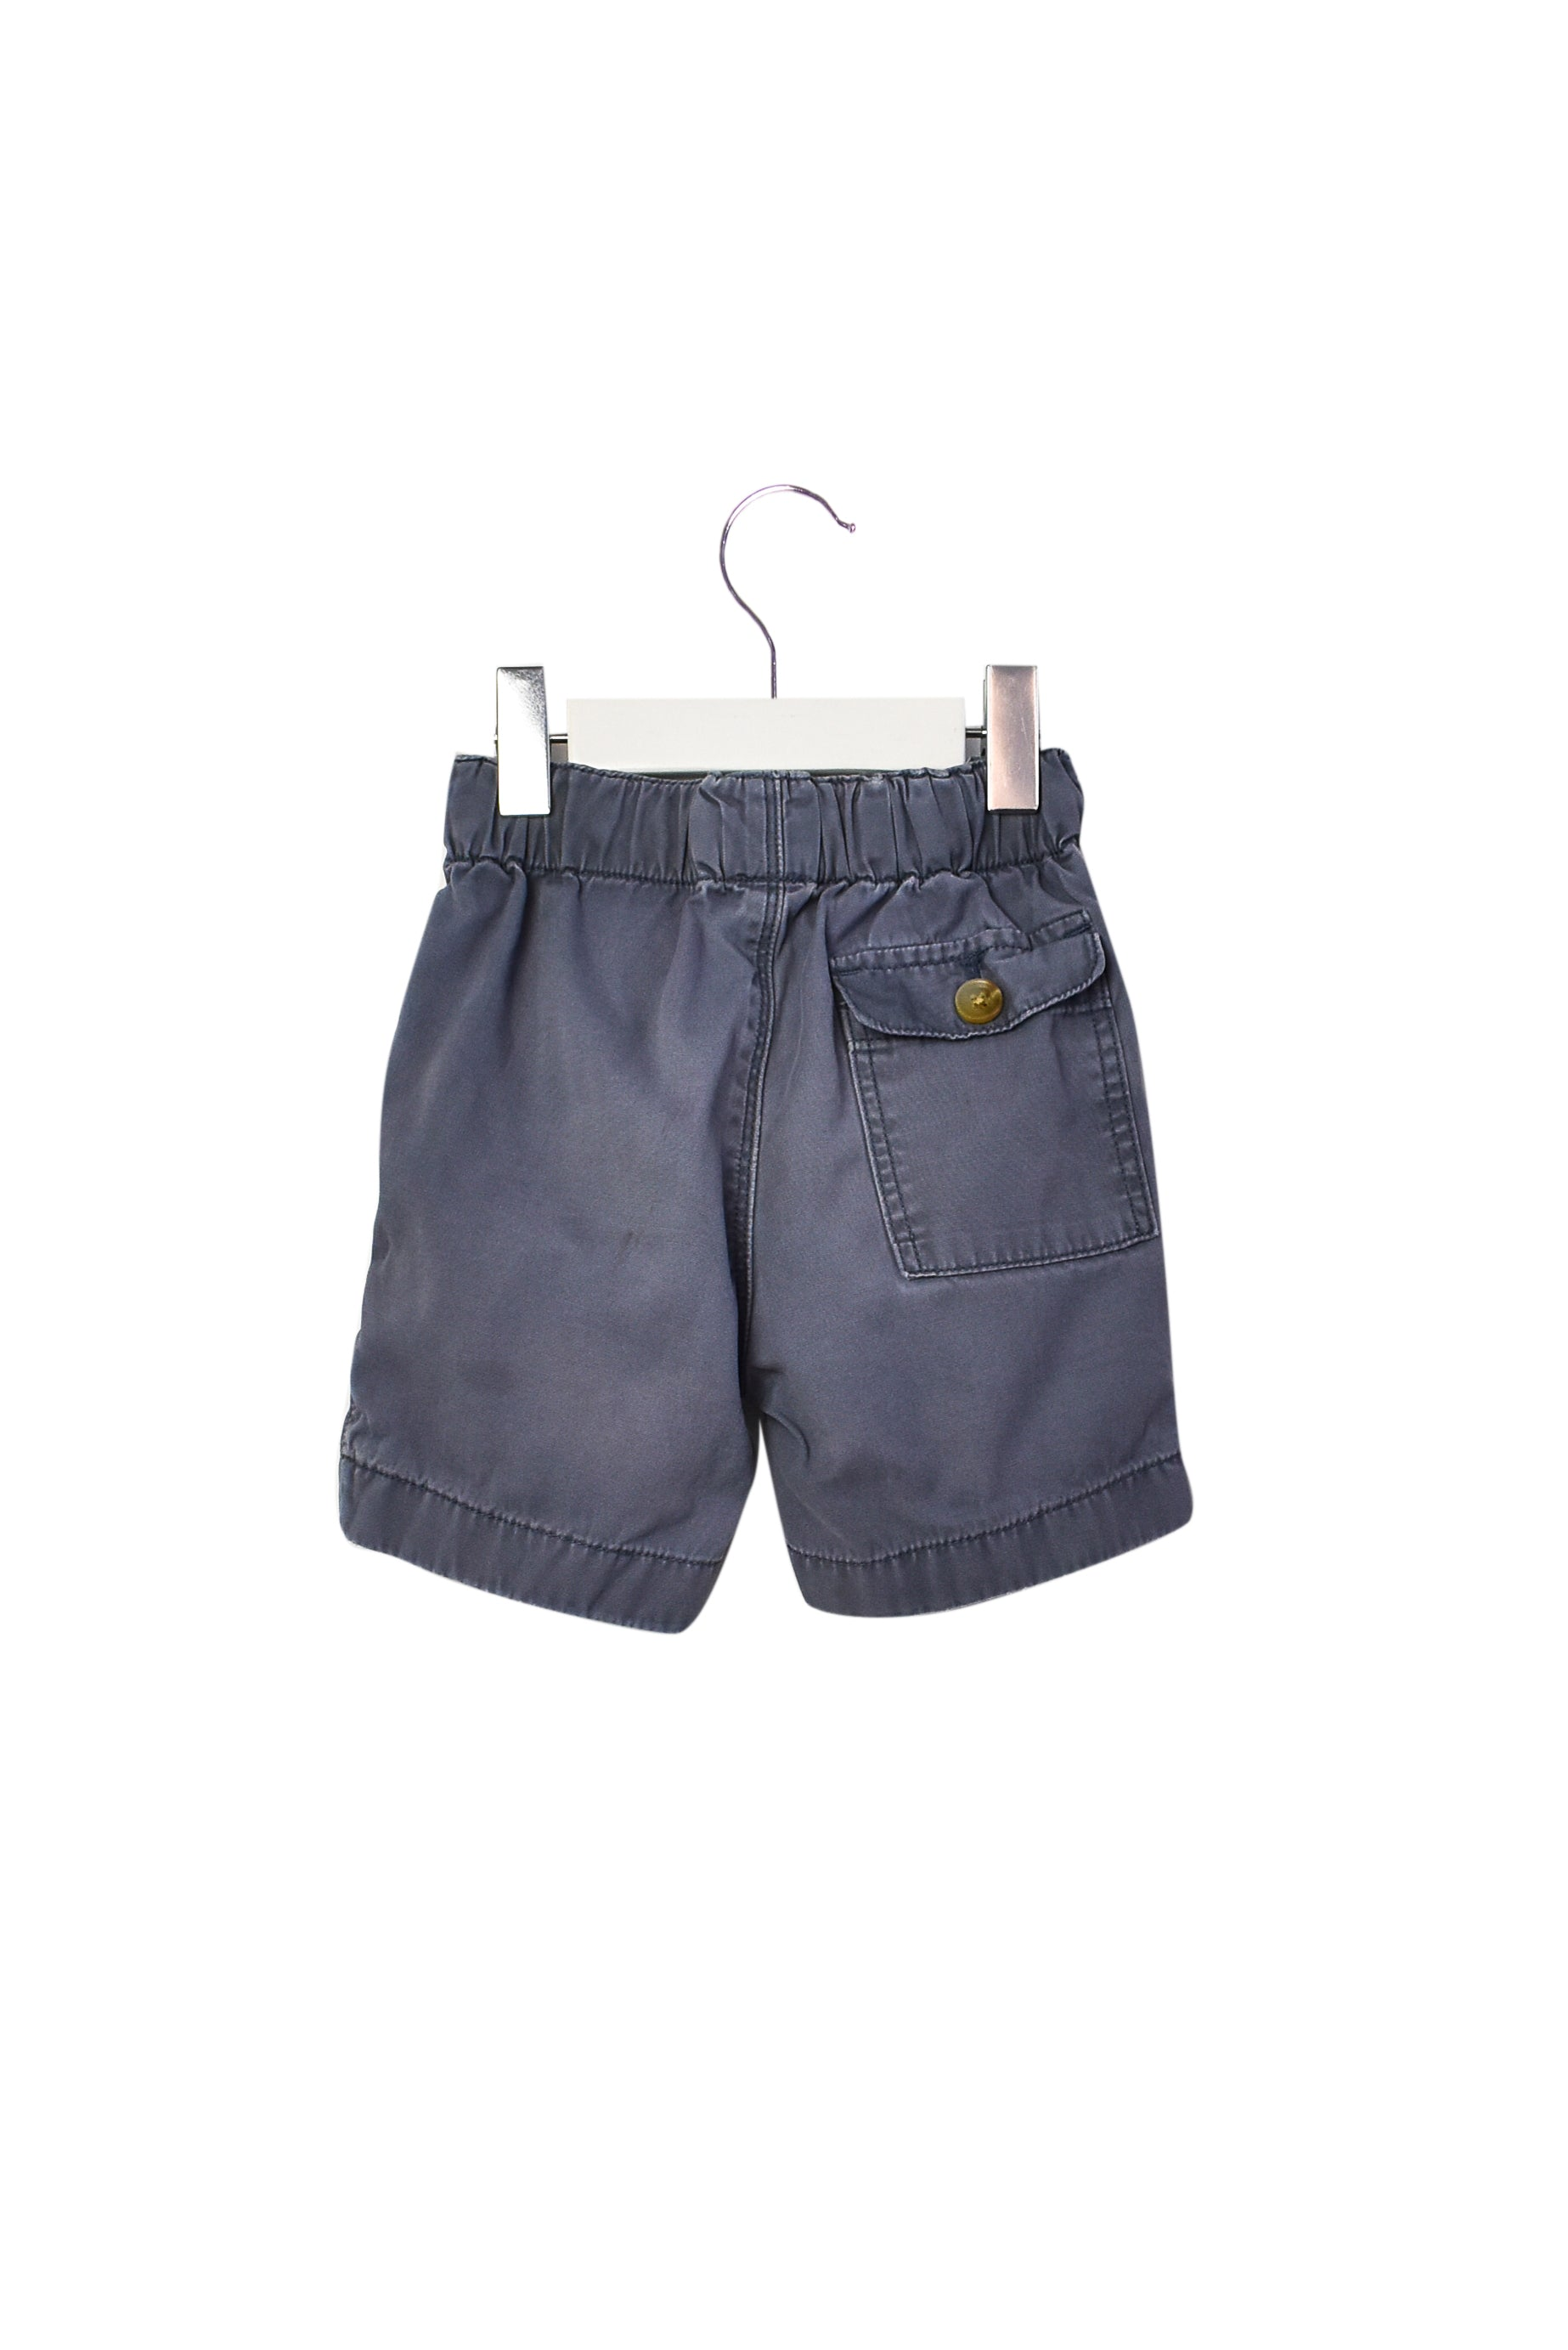 10006911 Crewcuts Kids~ Shorts 2T at Retykle